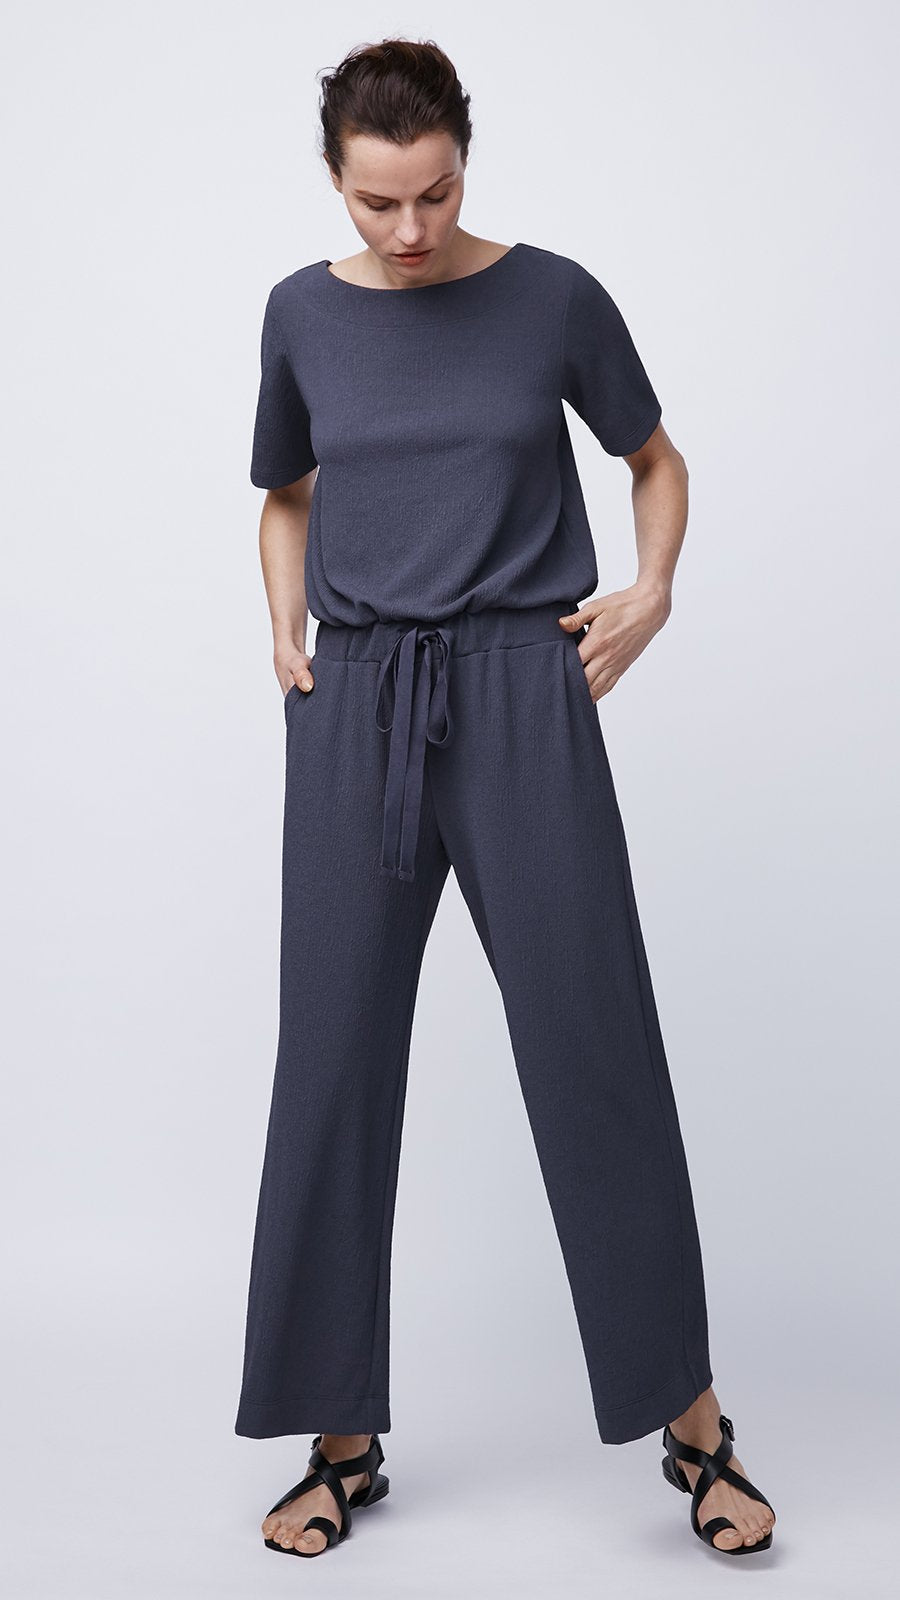 Women's Short Sleeved Jumpsuit in Navy by b new york